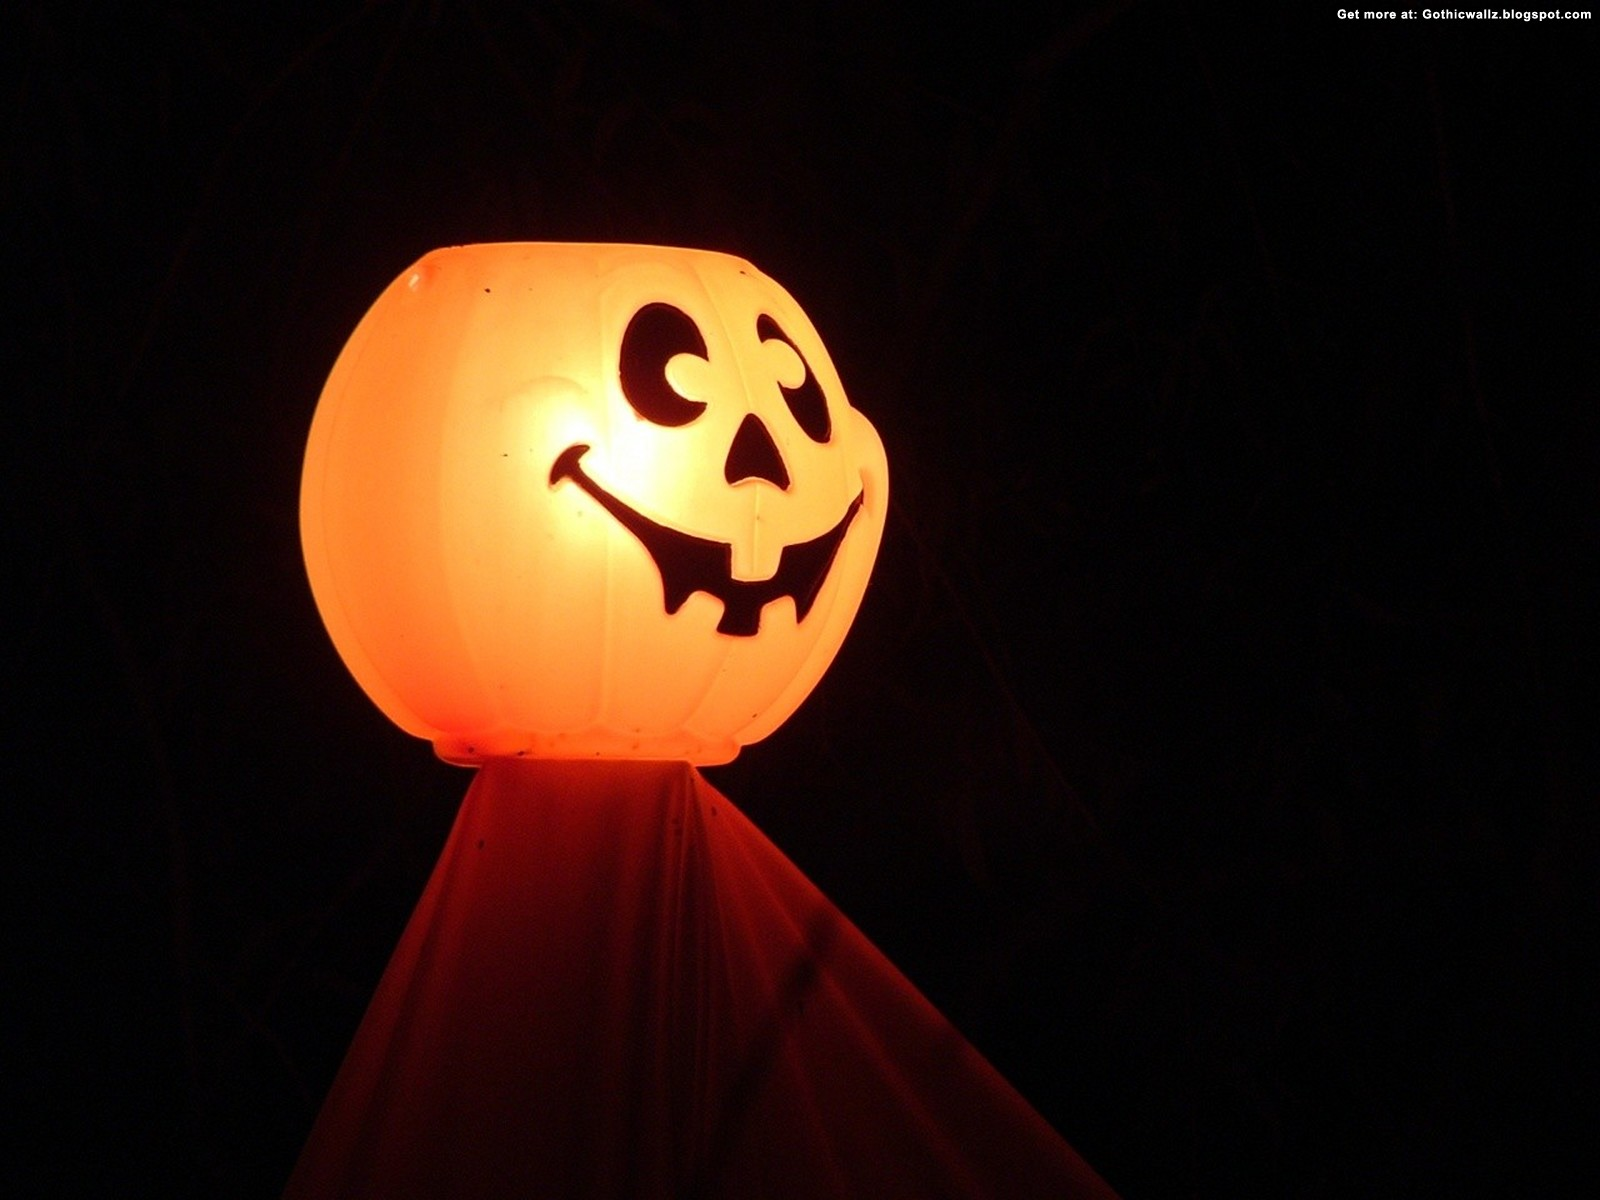 halloween pumpkin 2 | Gothic Wallpaper Download